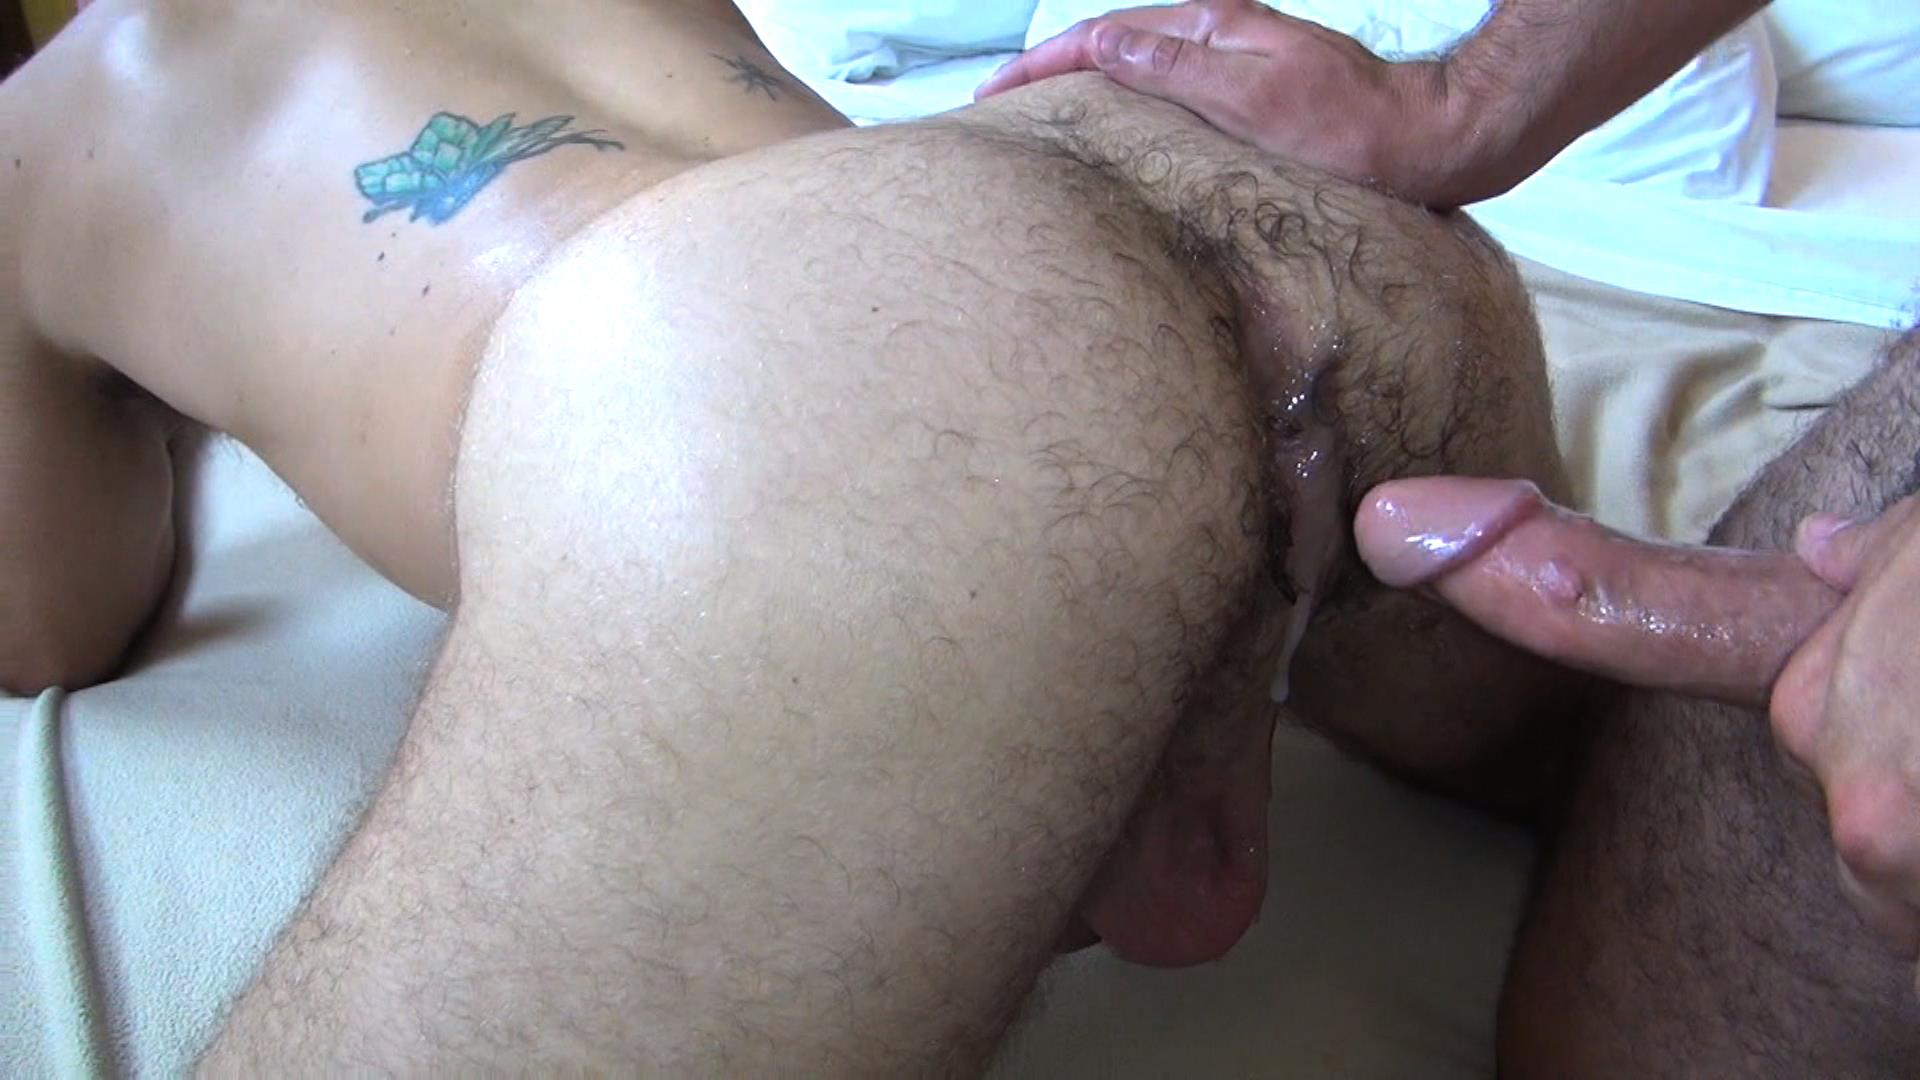 Raw Fuck Club Jon Shield and Cam Christou Guys Fucking Bareback Sex Tape In A Sleazy Hotel Amateur Gay Porn 7 Jon Shield and Cam Christou Fucking Bareback In A Sleazy Motel